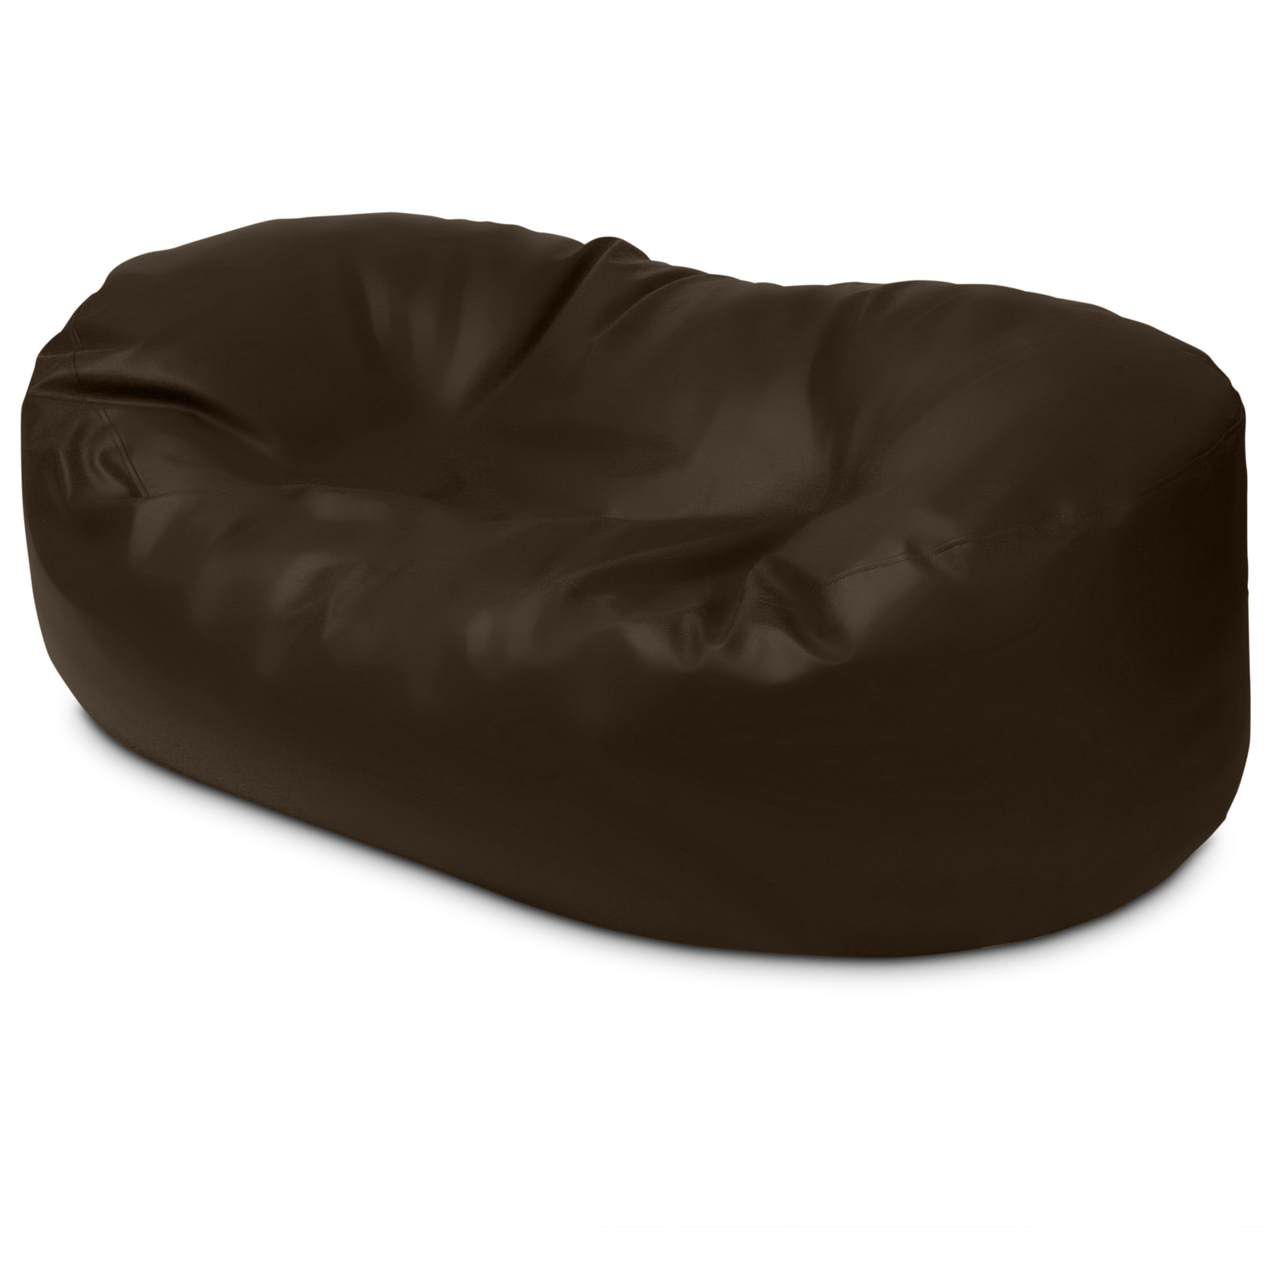 Classic 2m Couch in chocolate